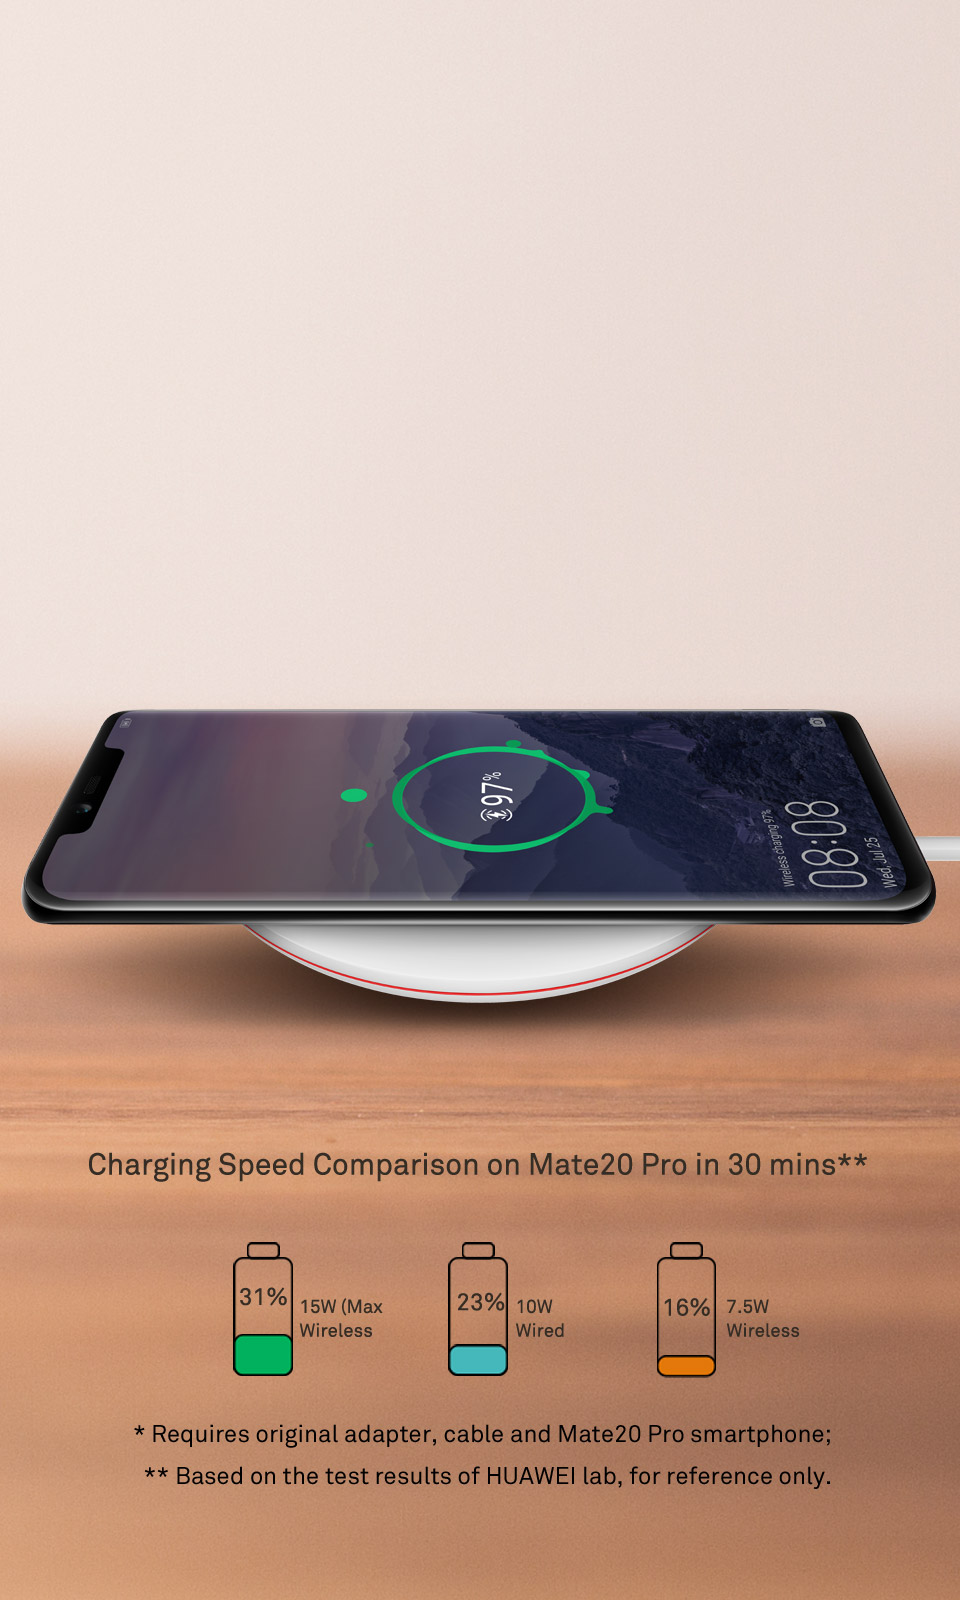 HUAWEI Wireless Charger, Qi standard, universal wireless charger I